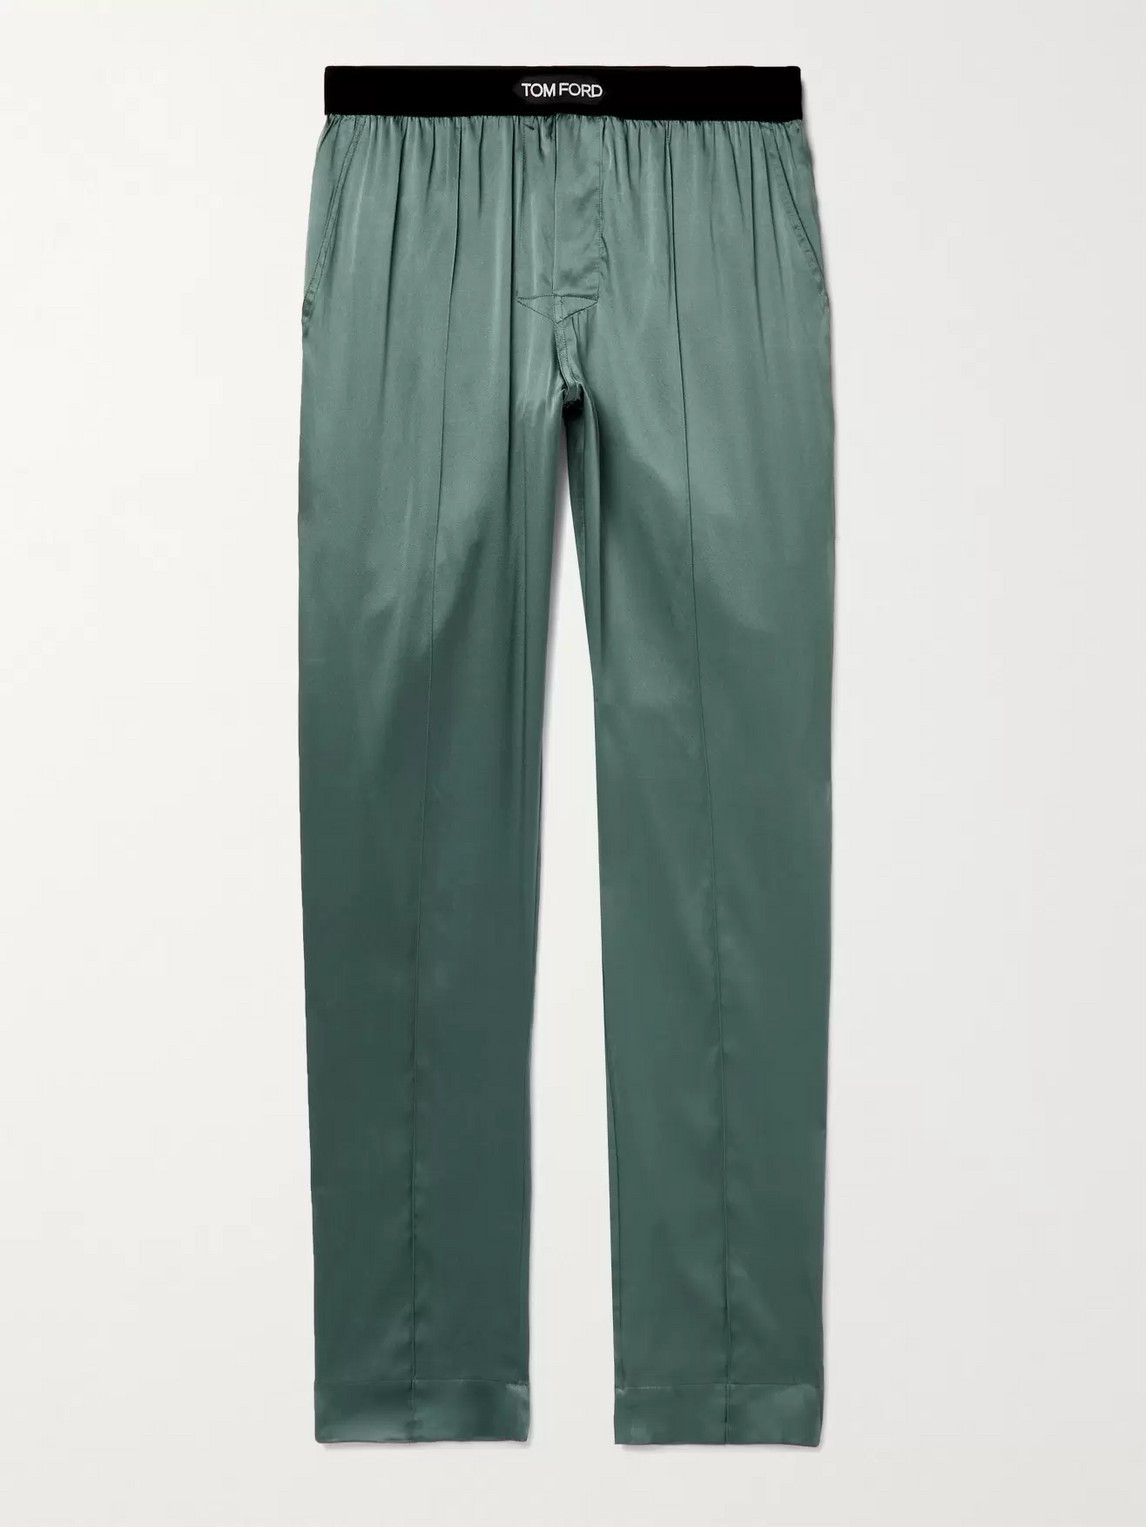 Tom Ford Silks VELVET-TRIMMED STRETCH-SILK SATIN PYJAMA TROUSERS